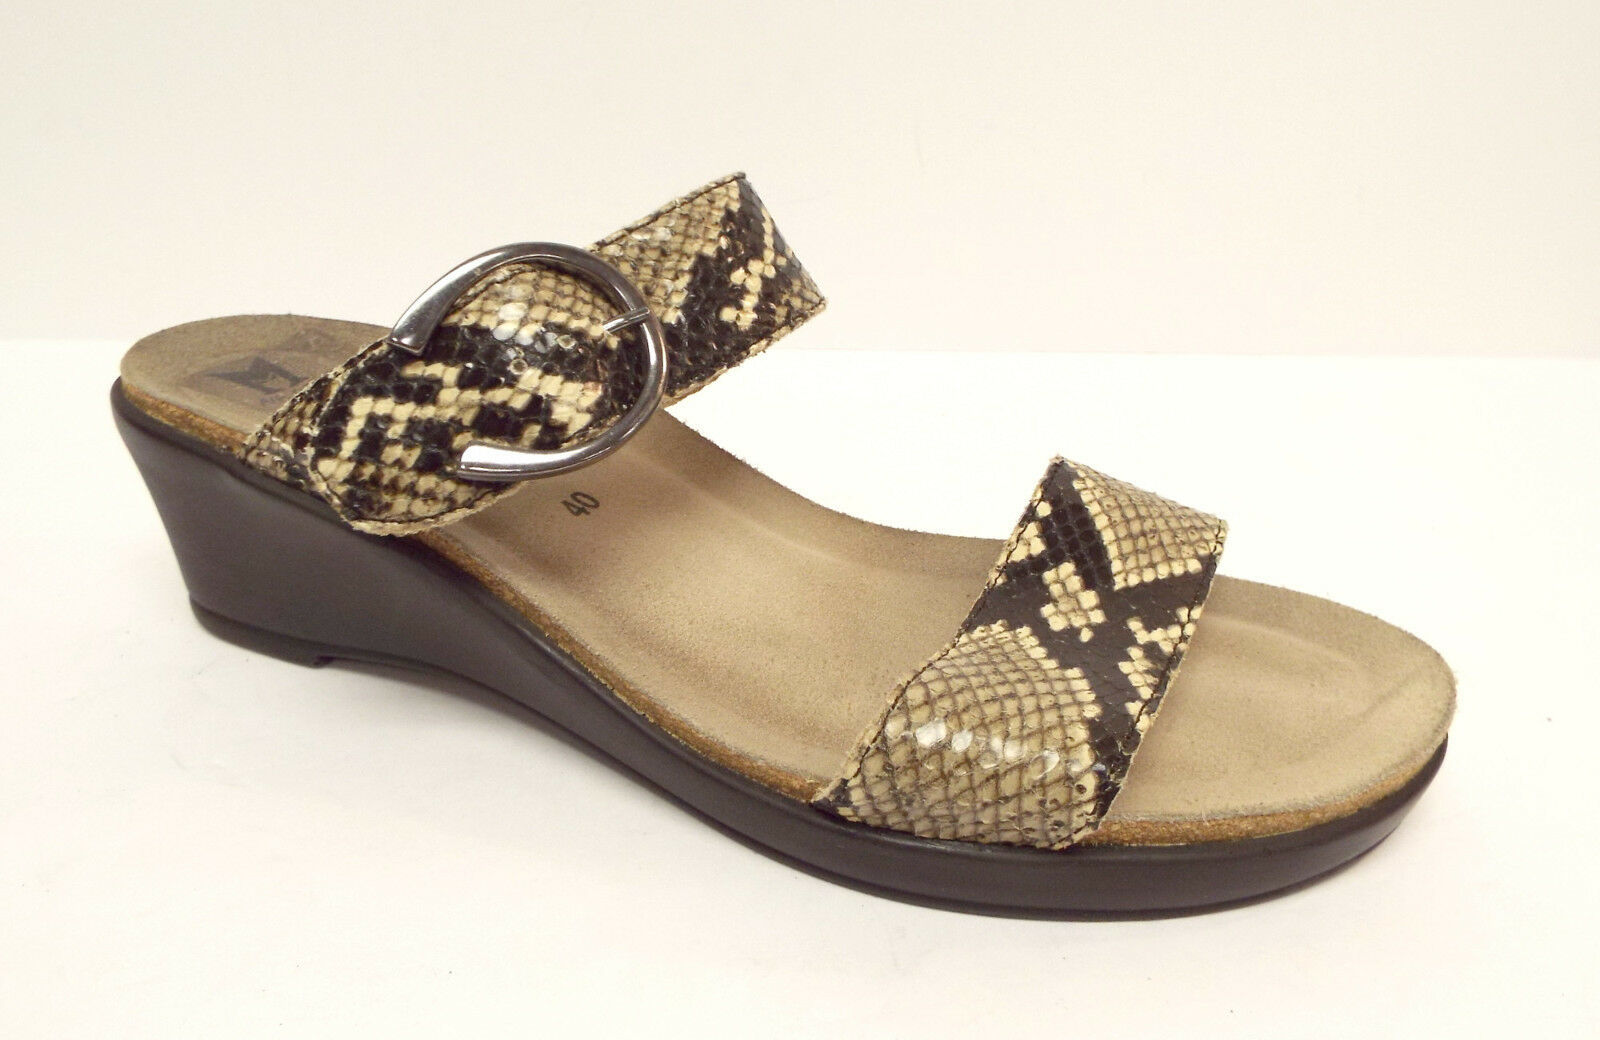 MEPHISTO Size 9 Snake Print Leather Wedge Slide Sandals Shoes 40